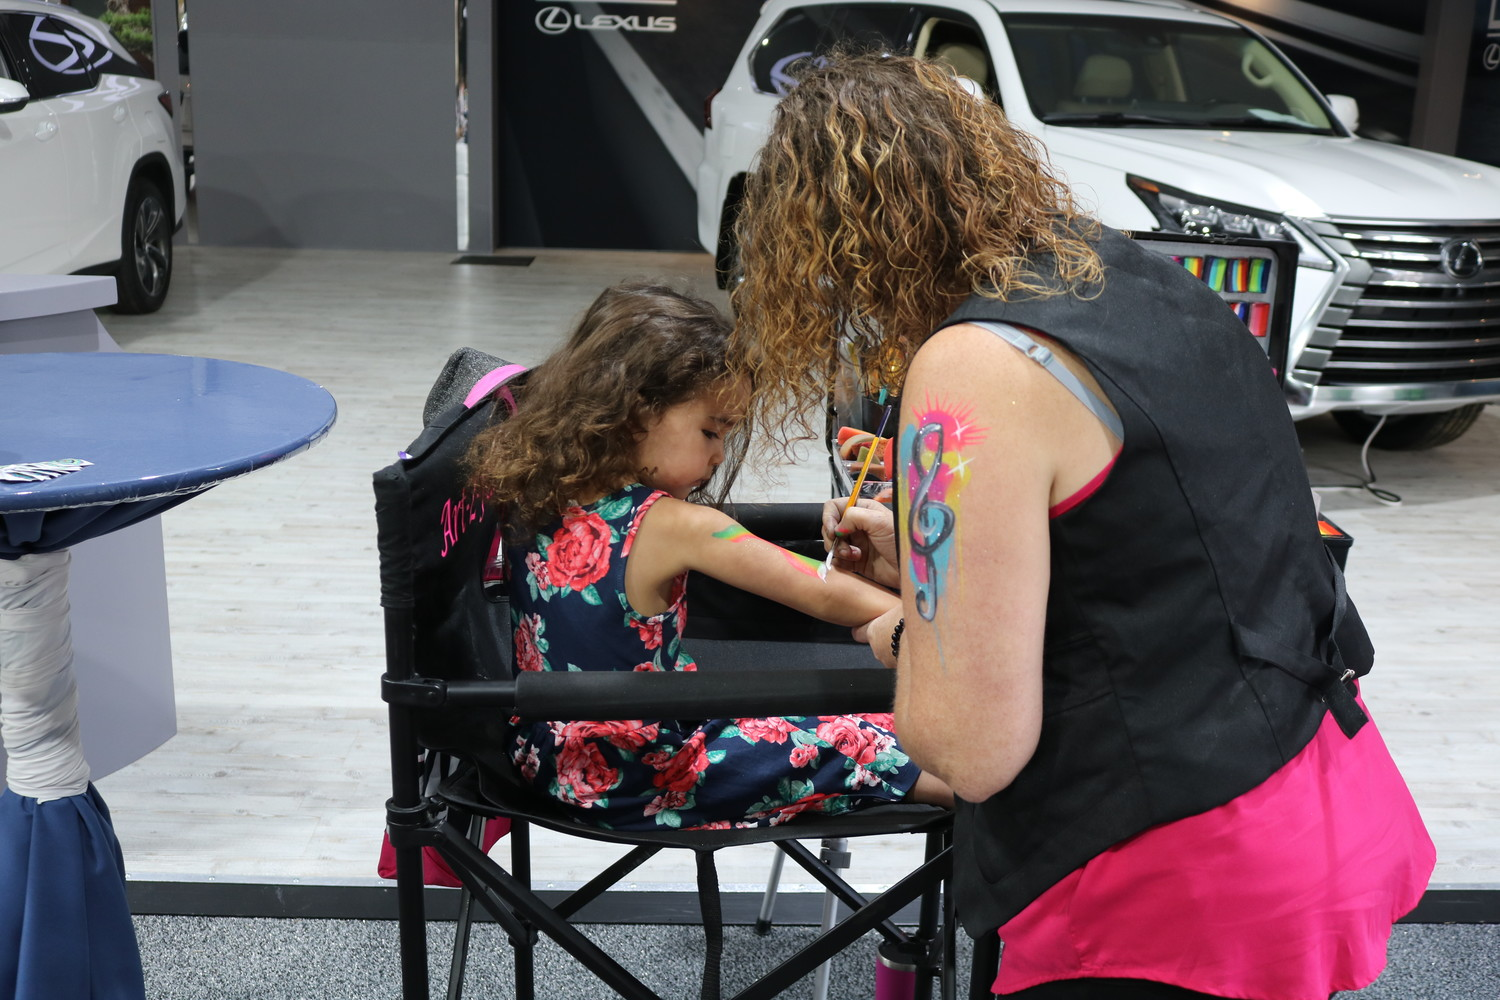 A child gets her arm painted with an artistic design at the Community PedsCare event.